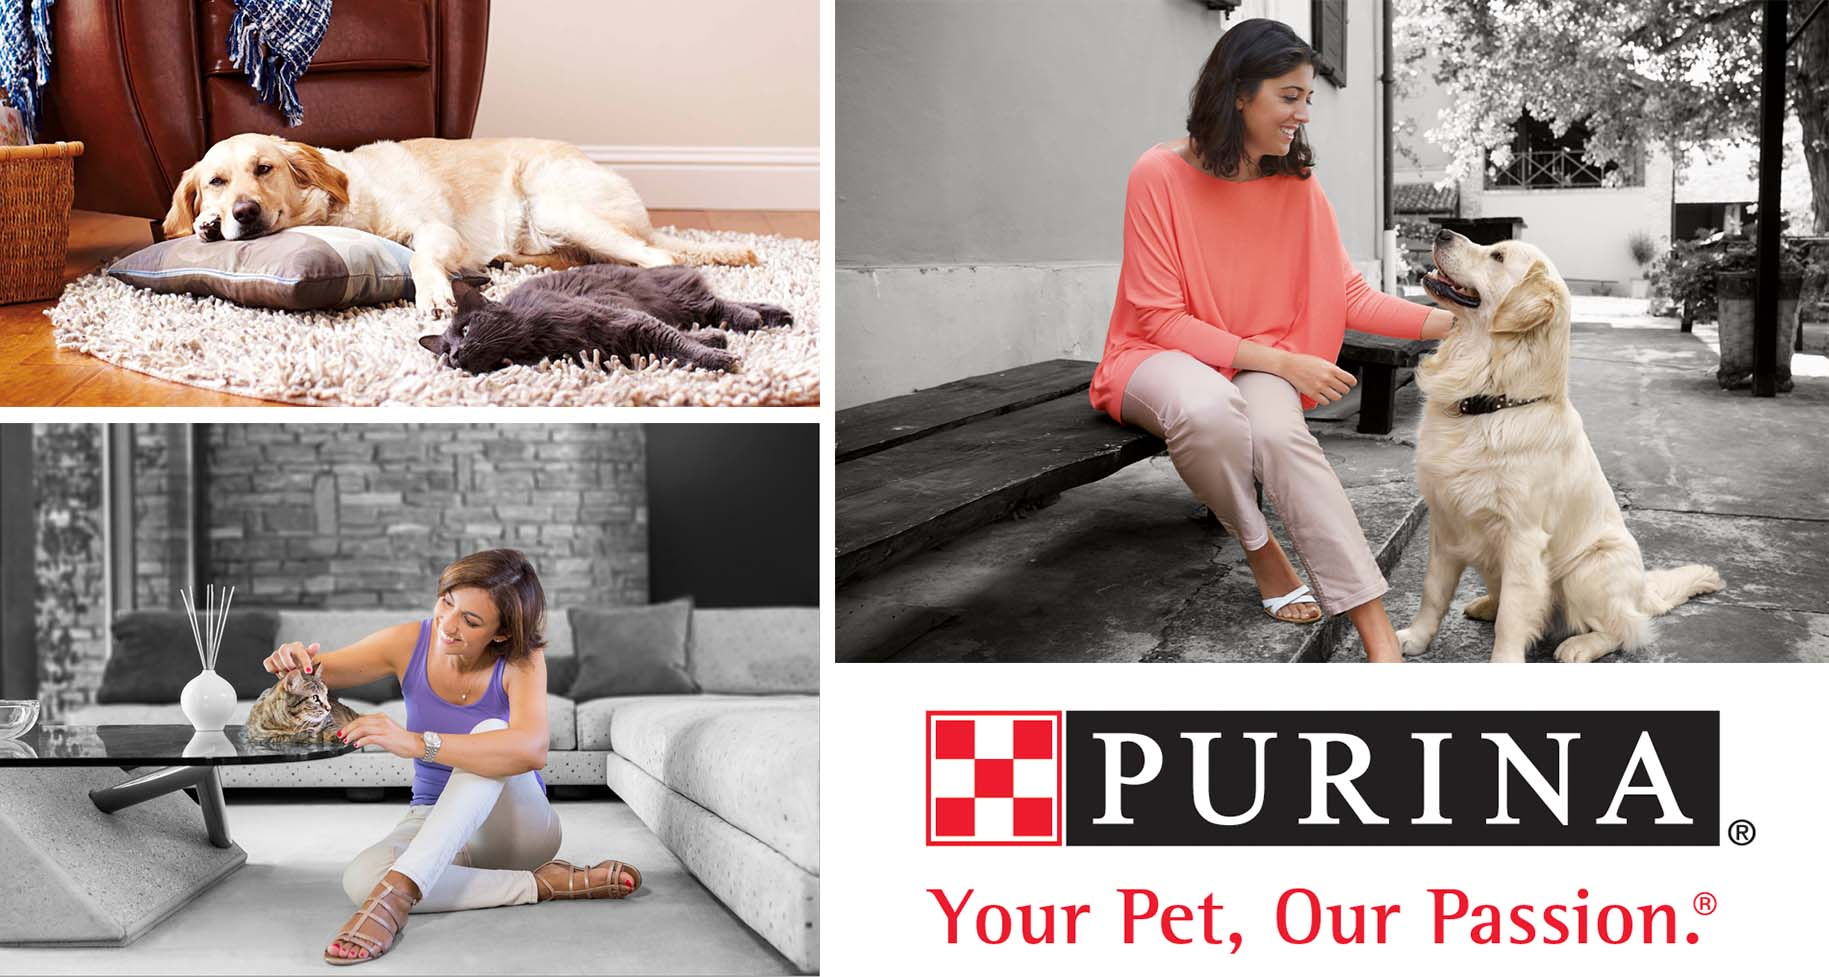 purina-sponsorship